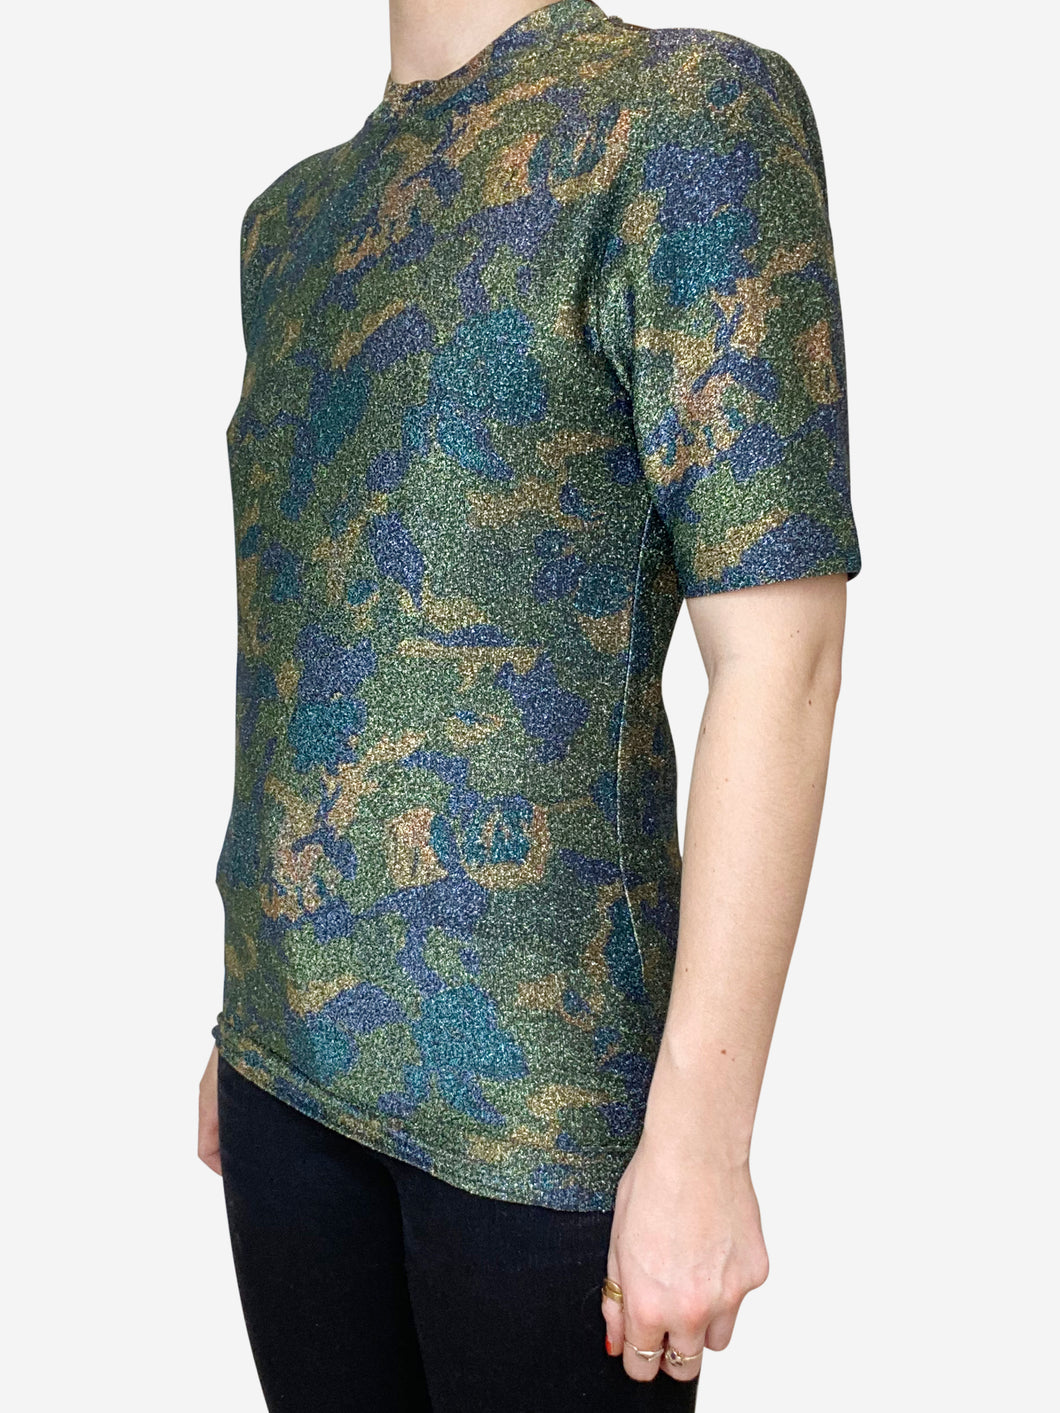 Metallic camo printed stretch jersey t-shirt - size UK 10